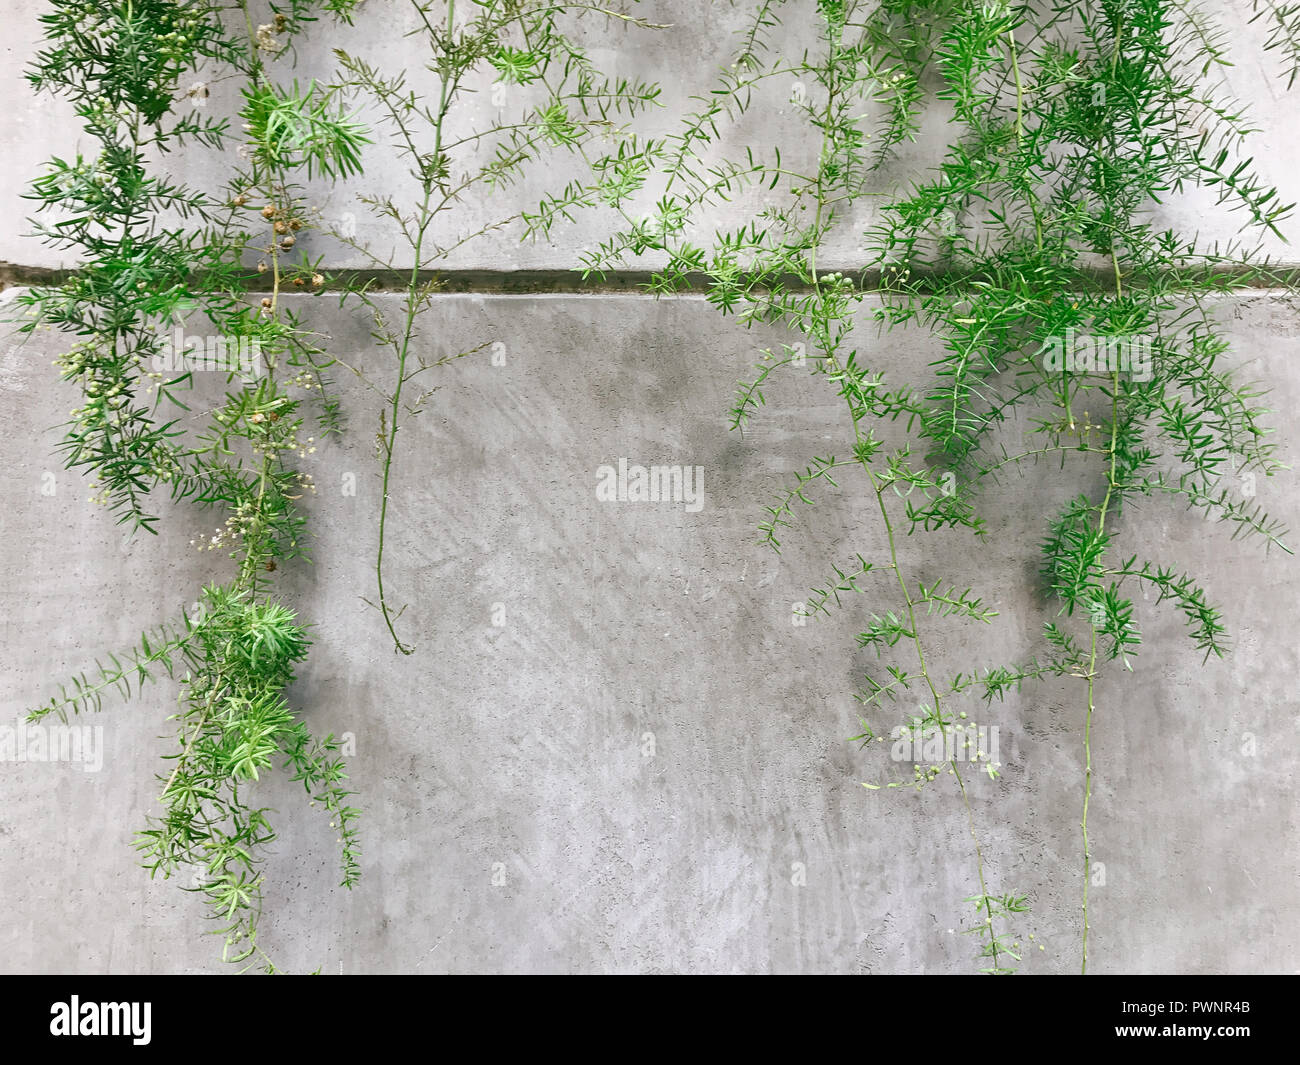 Textured Grey Wall Background, With Green Vines Growing - Stock Image